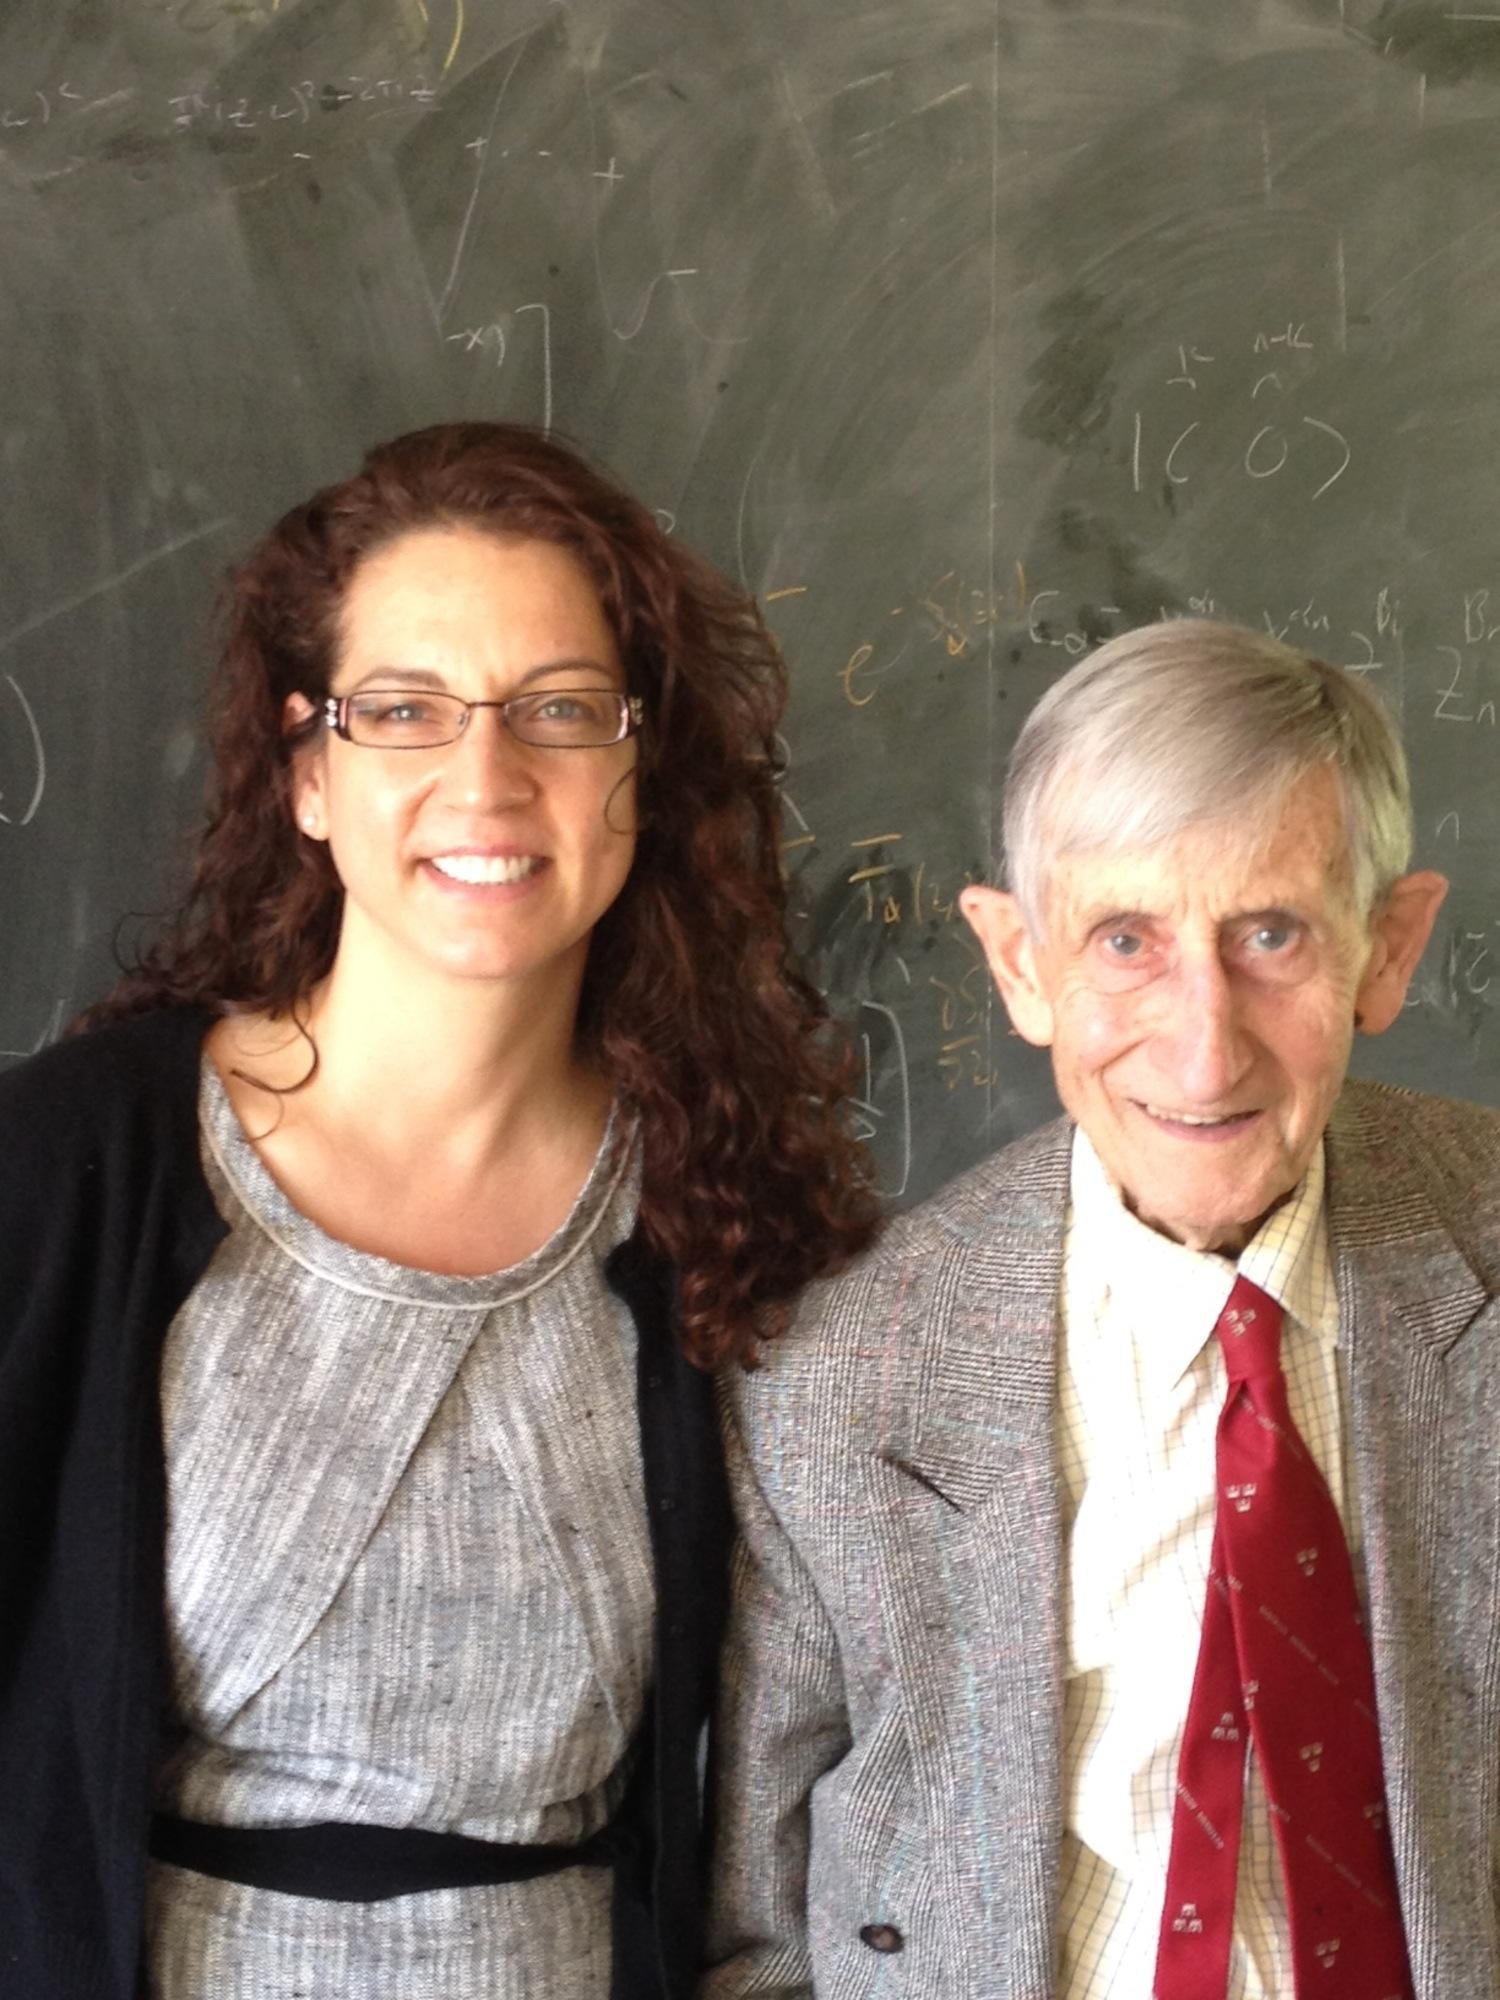 Freeman Dyson and Kristen Ghodsee 2